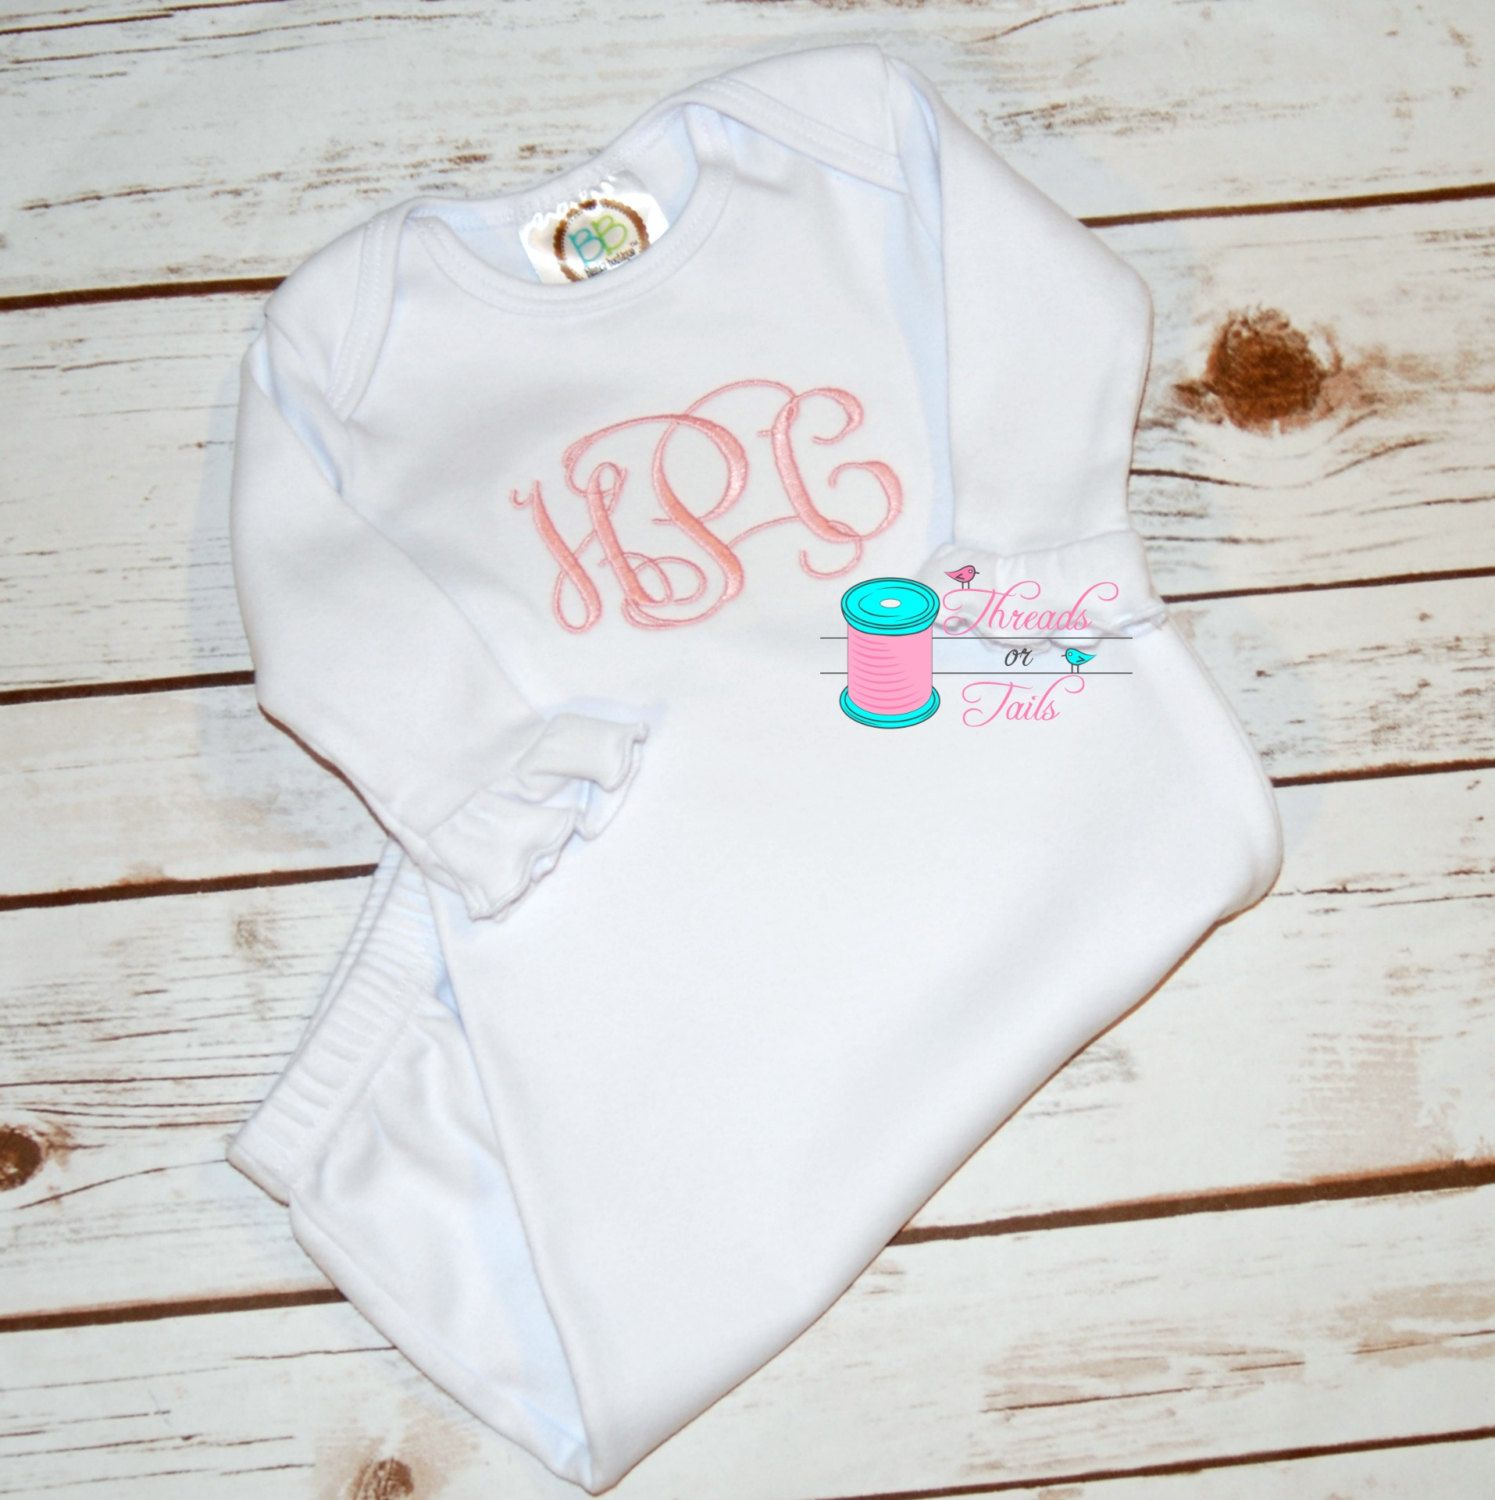 Monogrammed baby gown baby gown monogrammed baby gifts new to threadsortailsms on etsy monogrammed baby gown monogrammed bib monogrammed burp cloth monogrammed baby gifts monogrammed baby items personalized negle Gallery